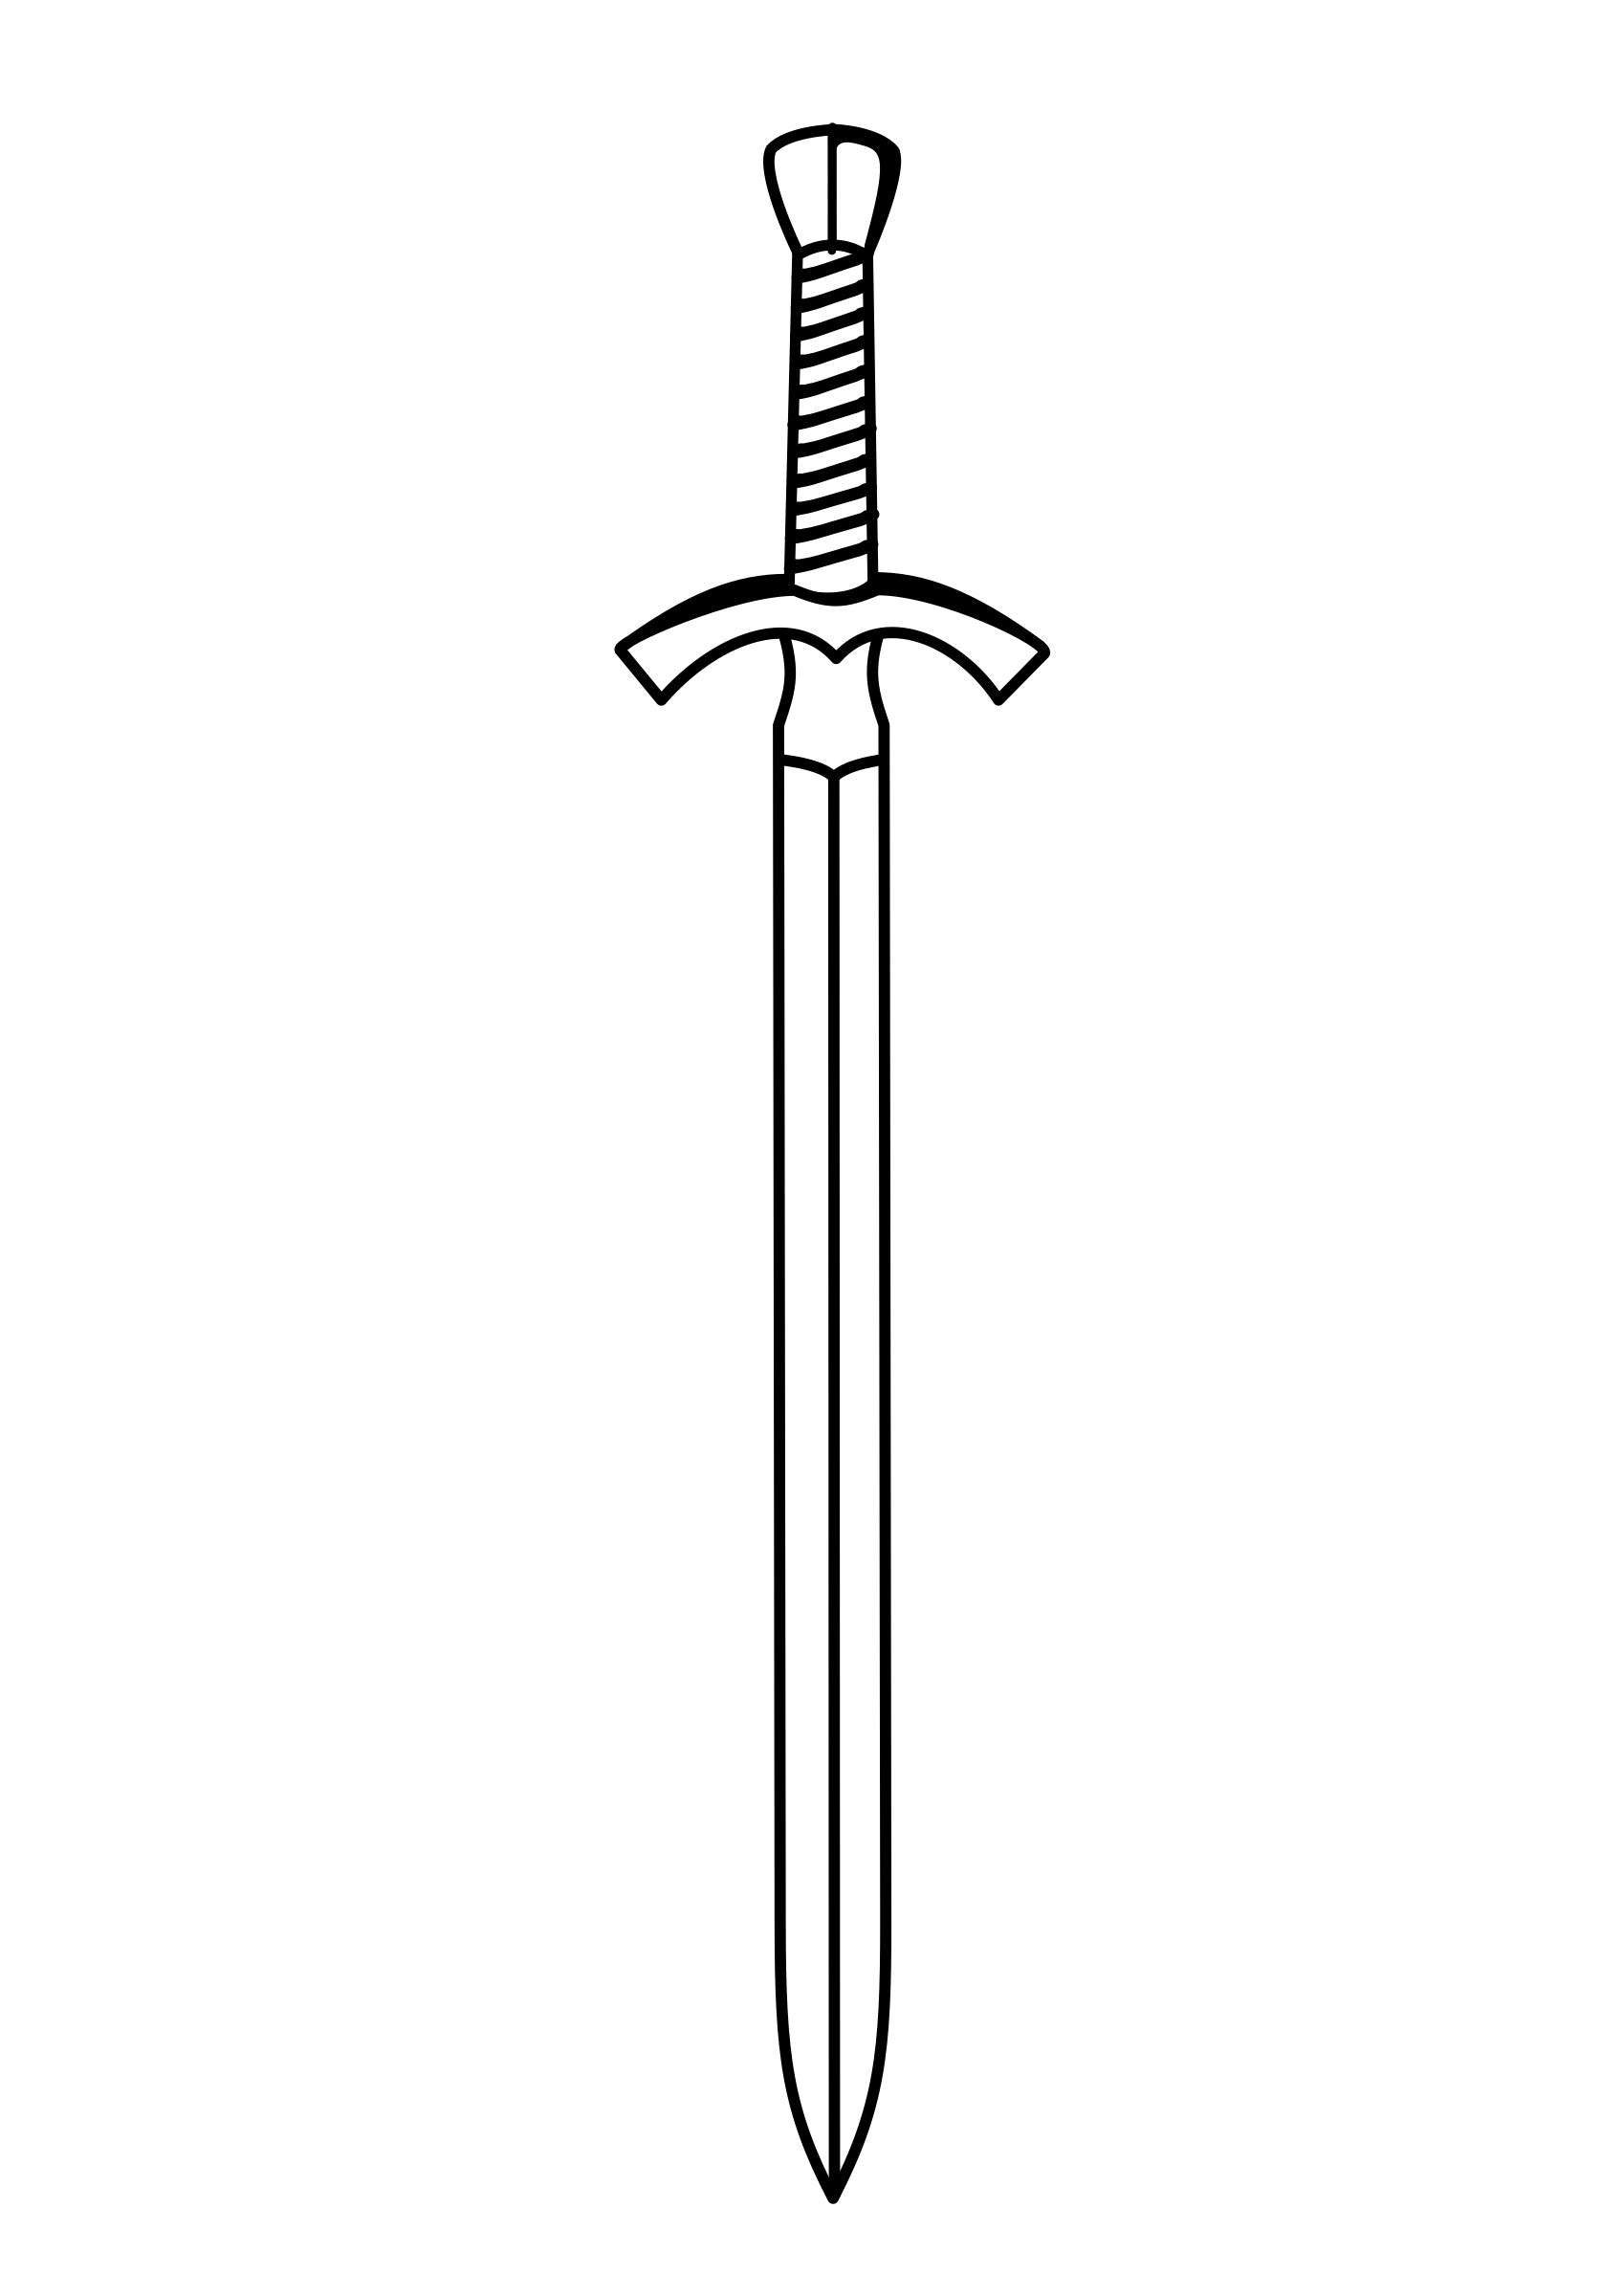 Clipart sword pencil in. Transparent dagger black and white vector royalty free